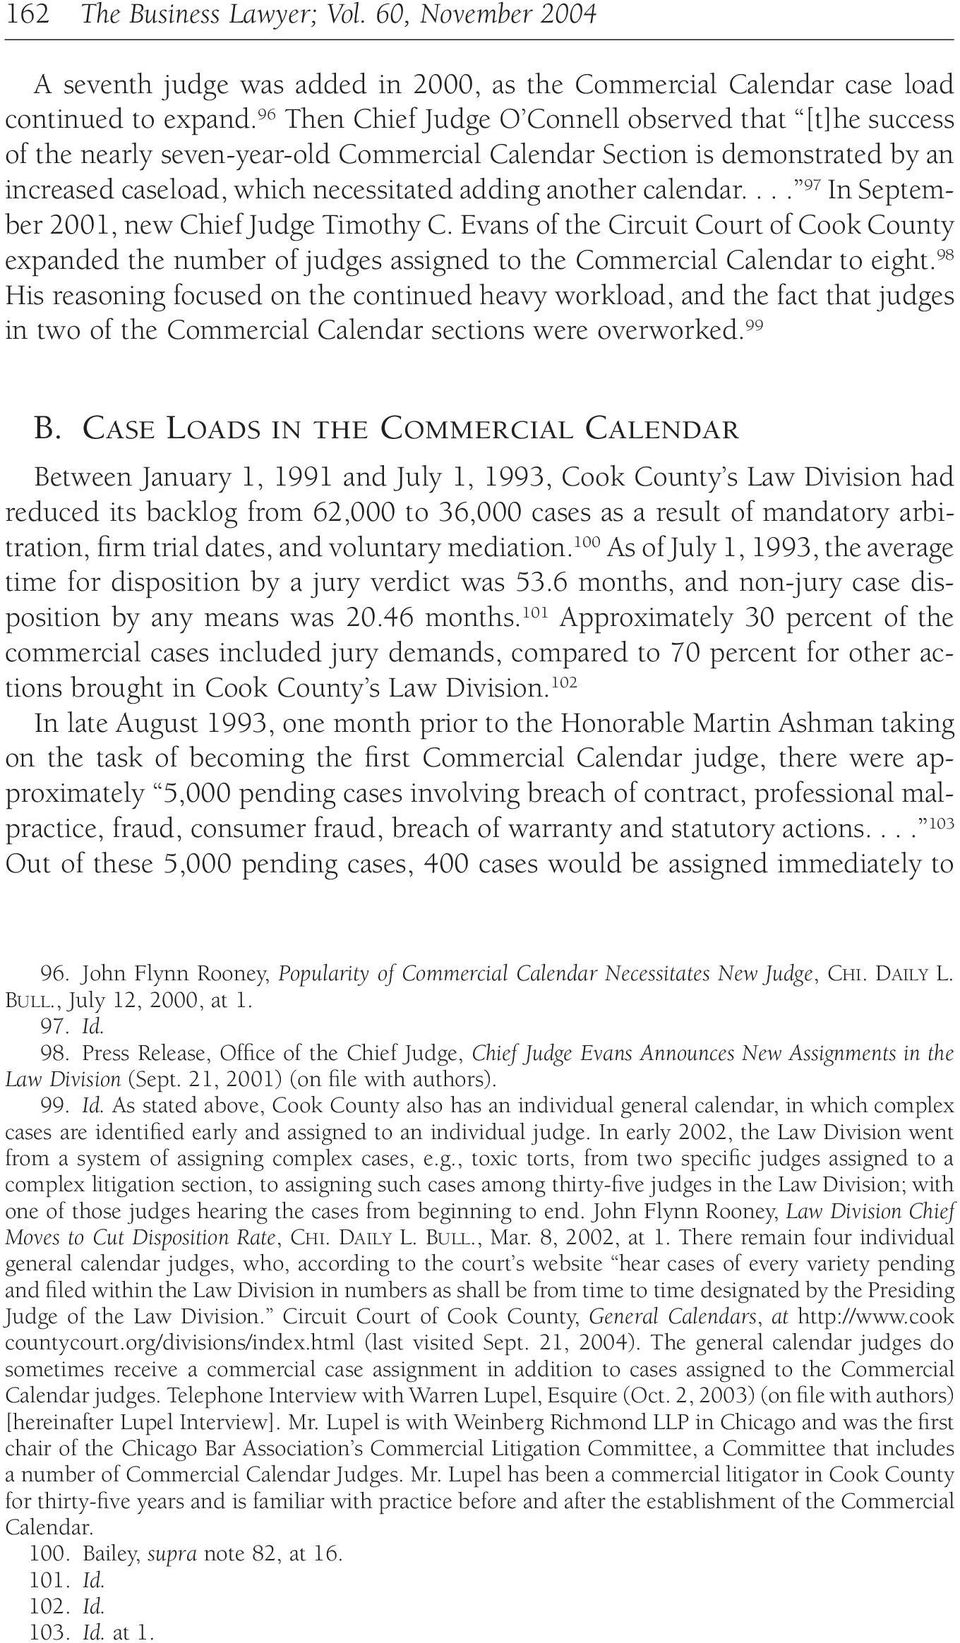 ... 97 In September 2001, new Chief Judge Timothy C. Evans of the Circuit Court of Cook County expanded the number of judges assigned to the Commercial Calendar to eight.